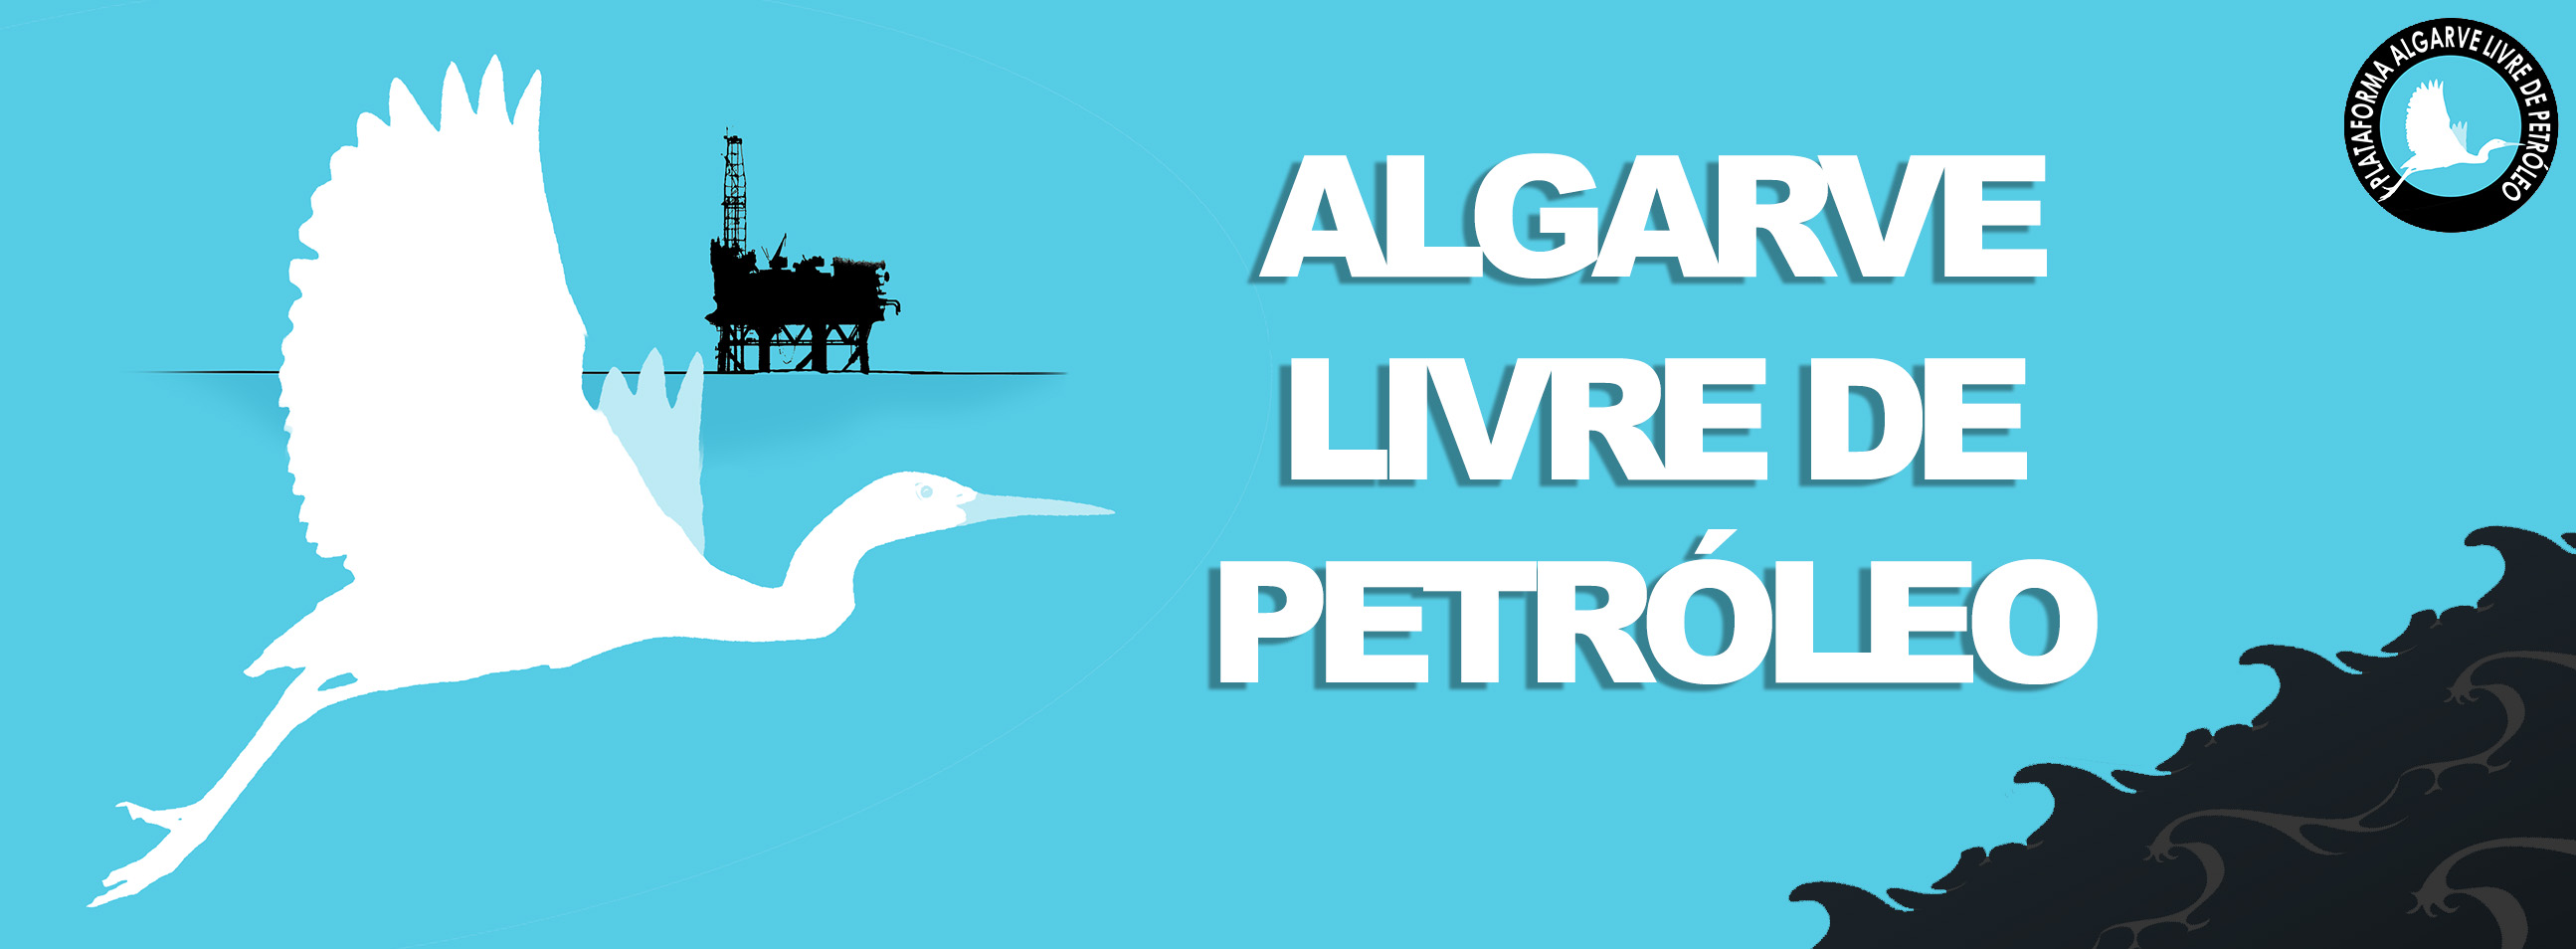 algarvelivredepetroleodestaque